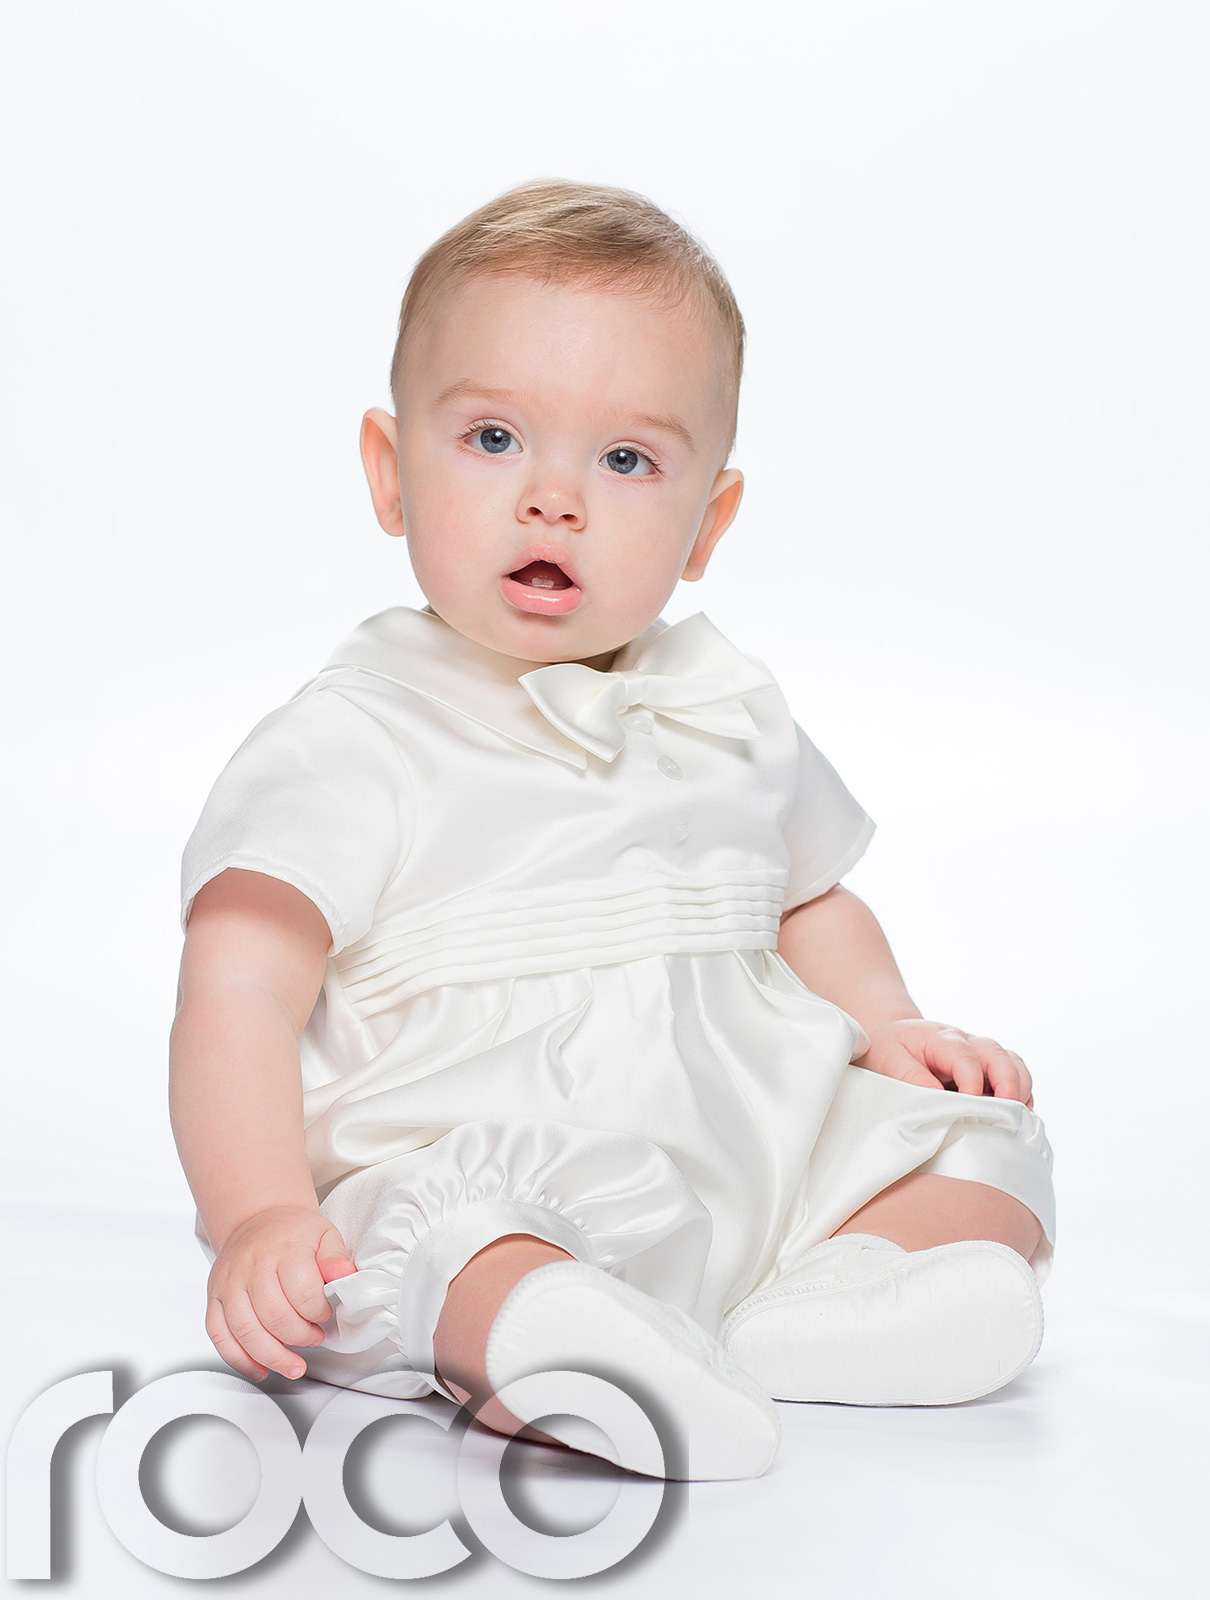 Baby Boys Cream Romper Suit Boys Christening Outfit Christening Suit | EBay